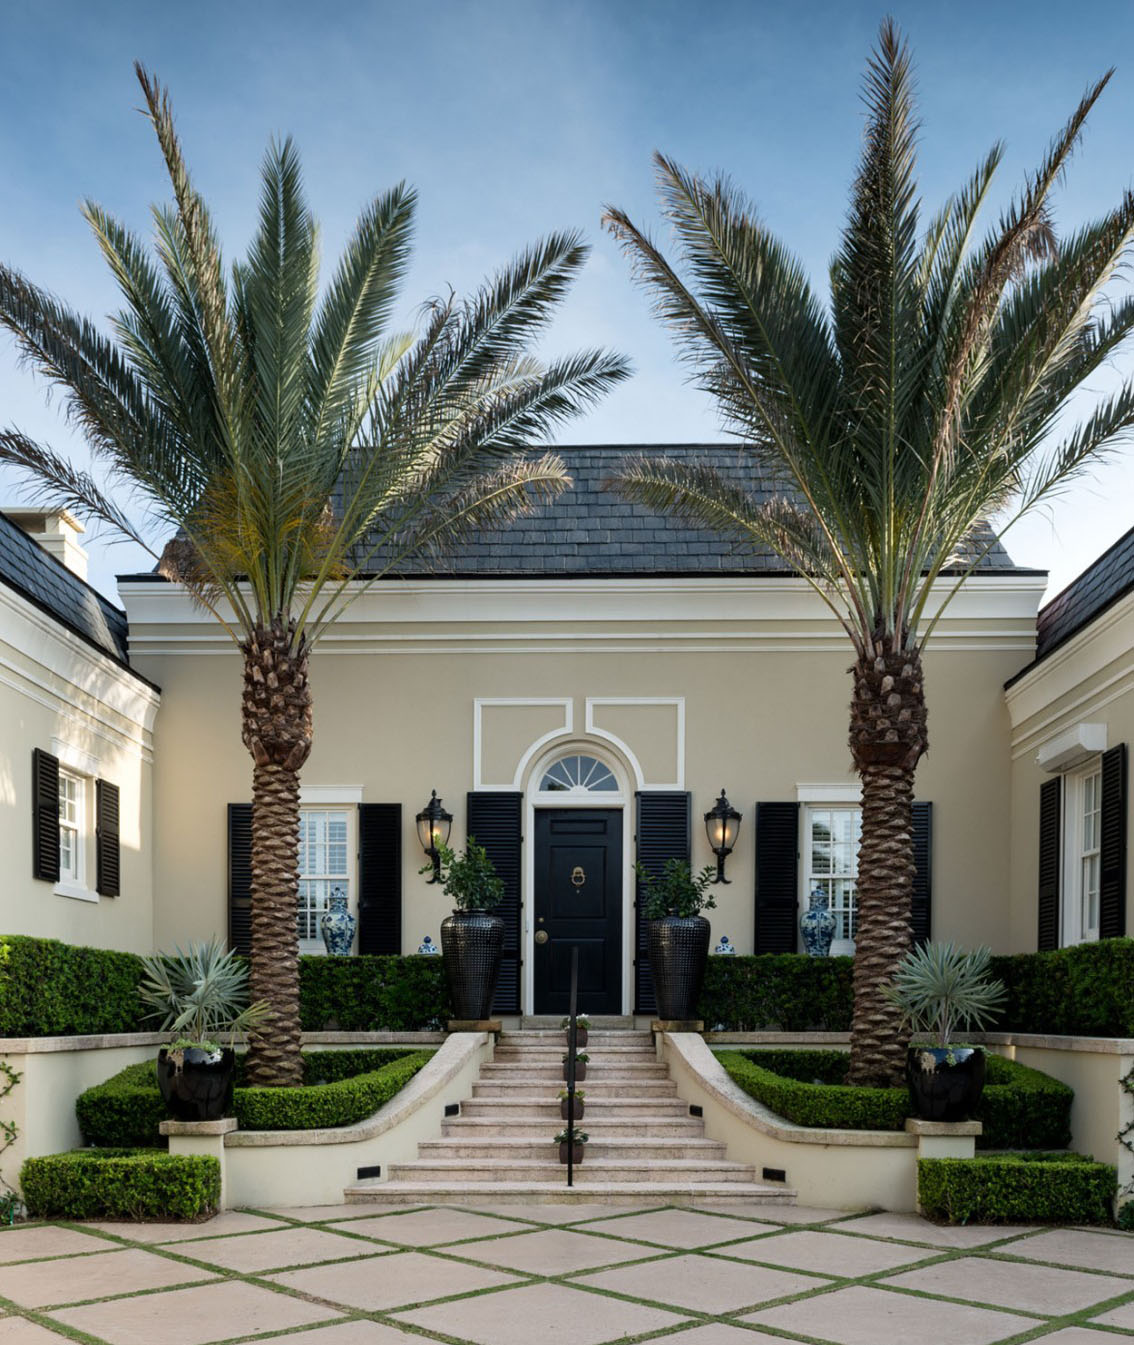 Elegant regency style palm beach villa combines classic Architect florida